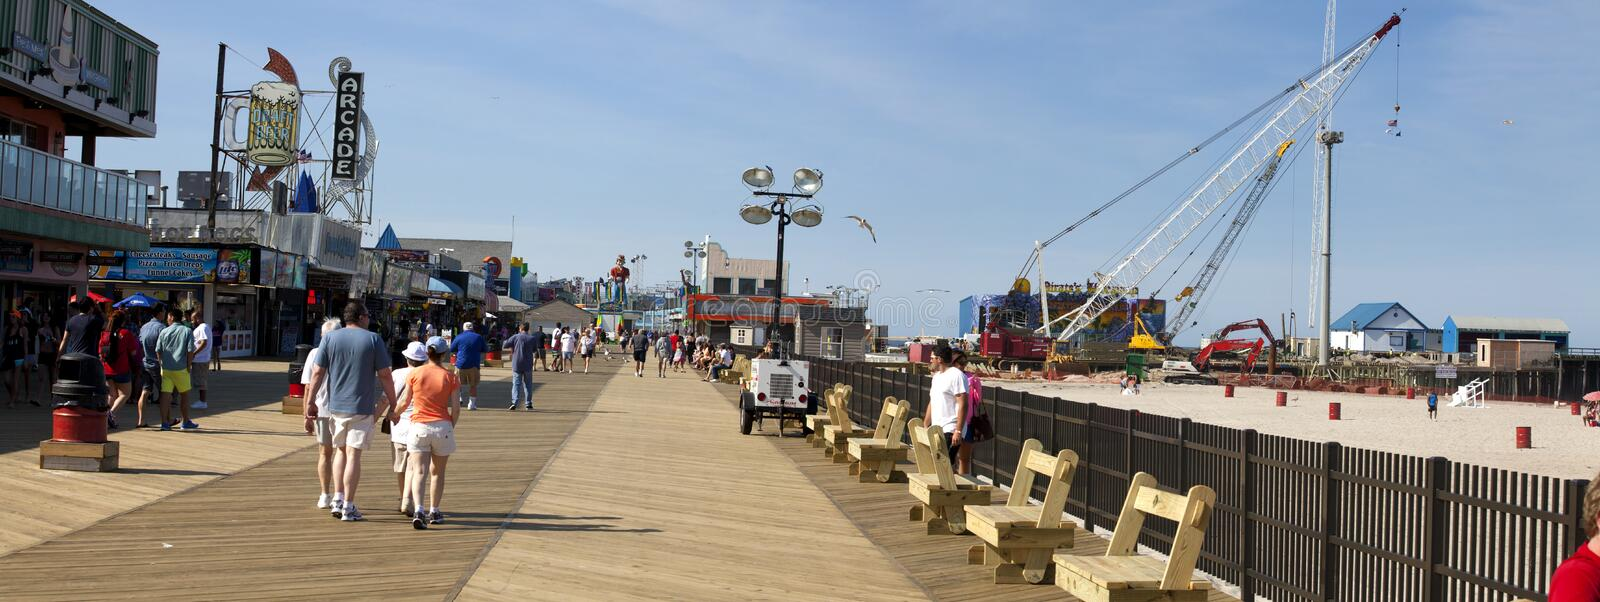 Download Hurricane Sandy Recovery In Seaside Heights, New Jersey Editorial Stock Image - Image: 31553444